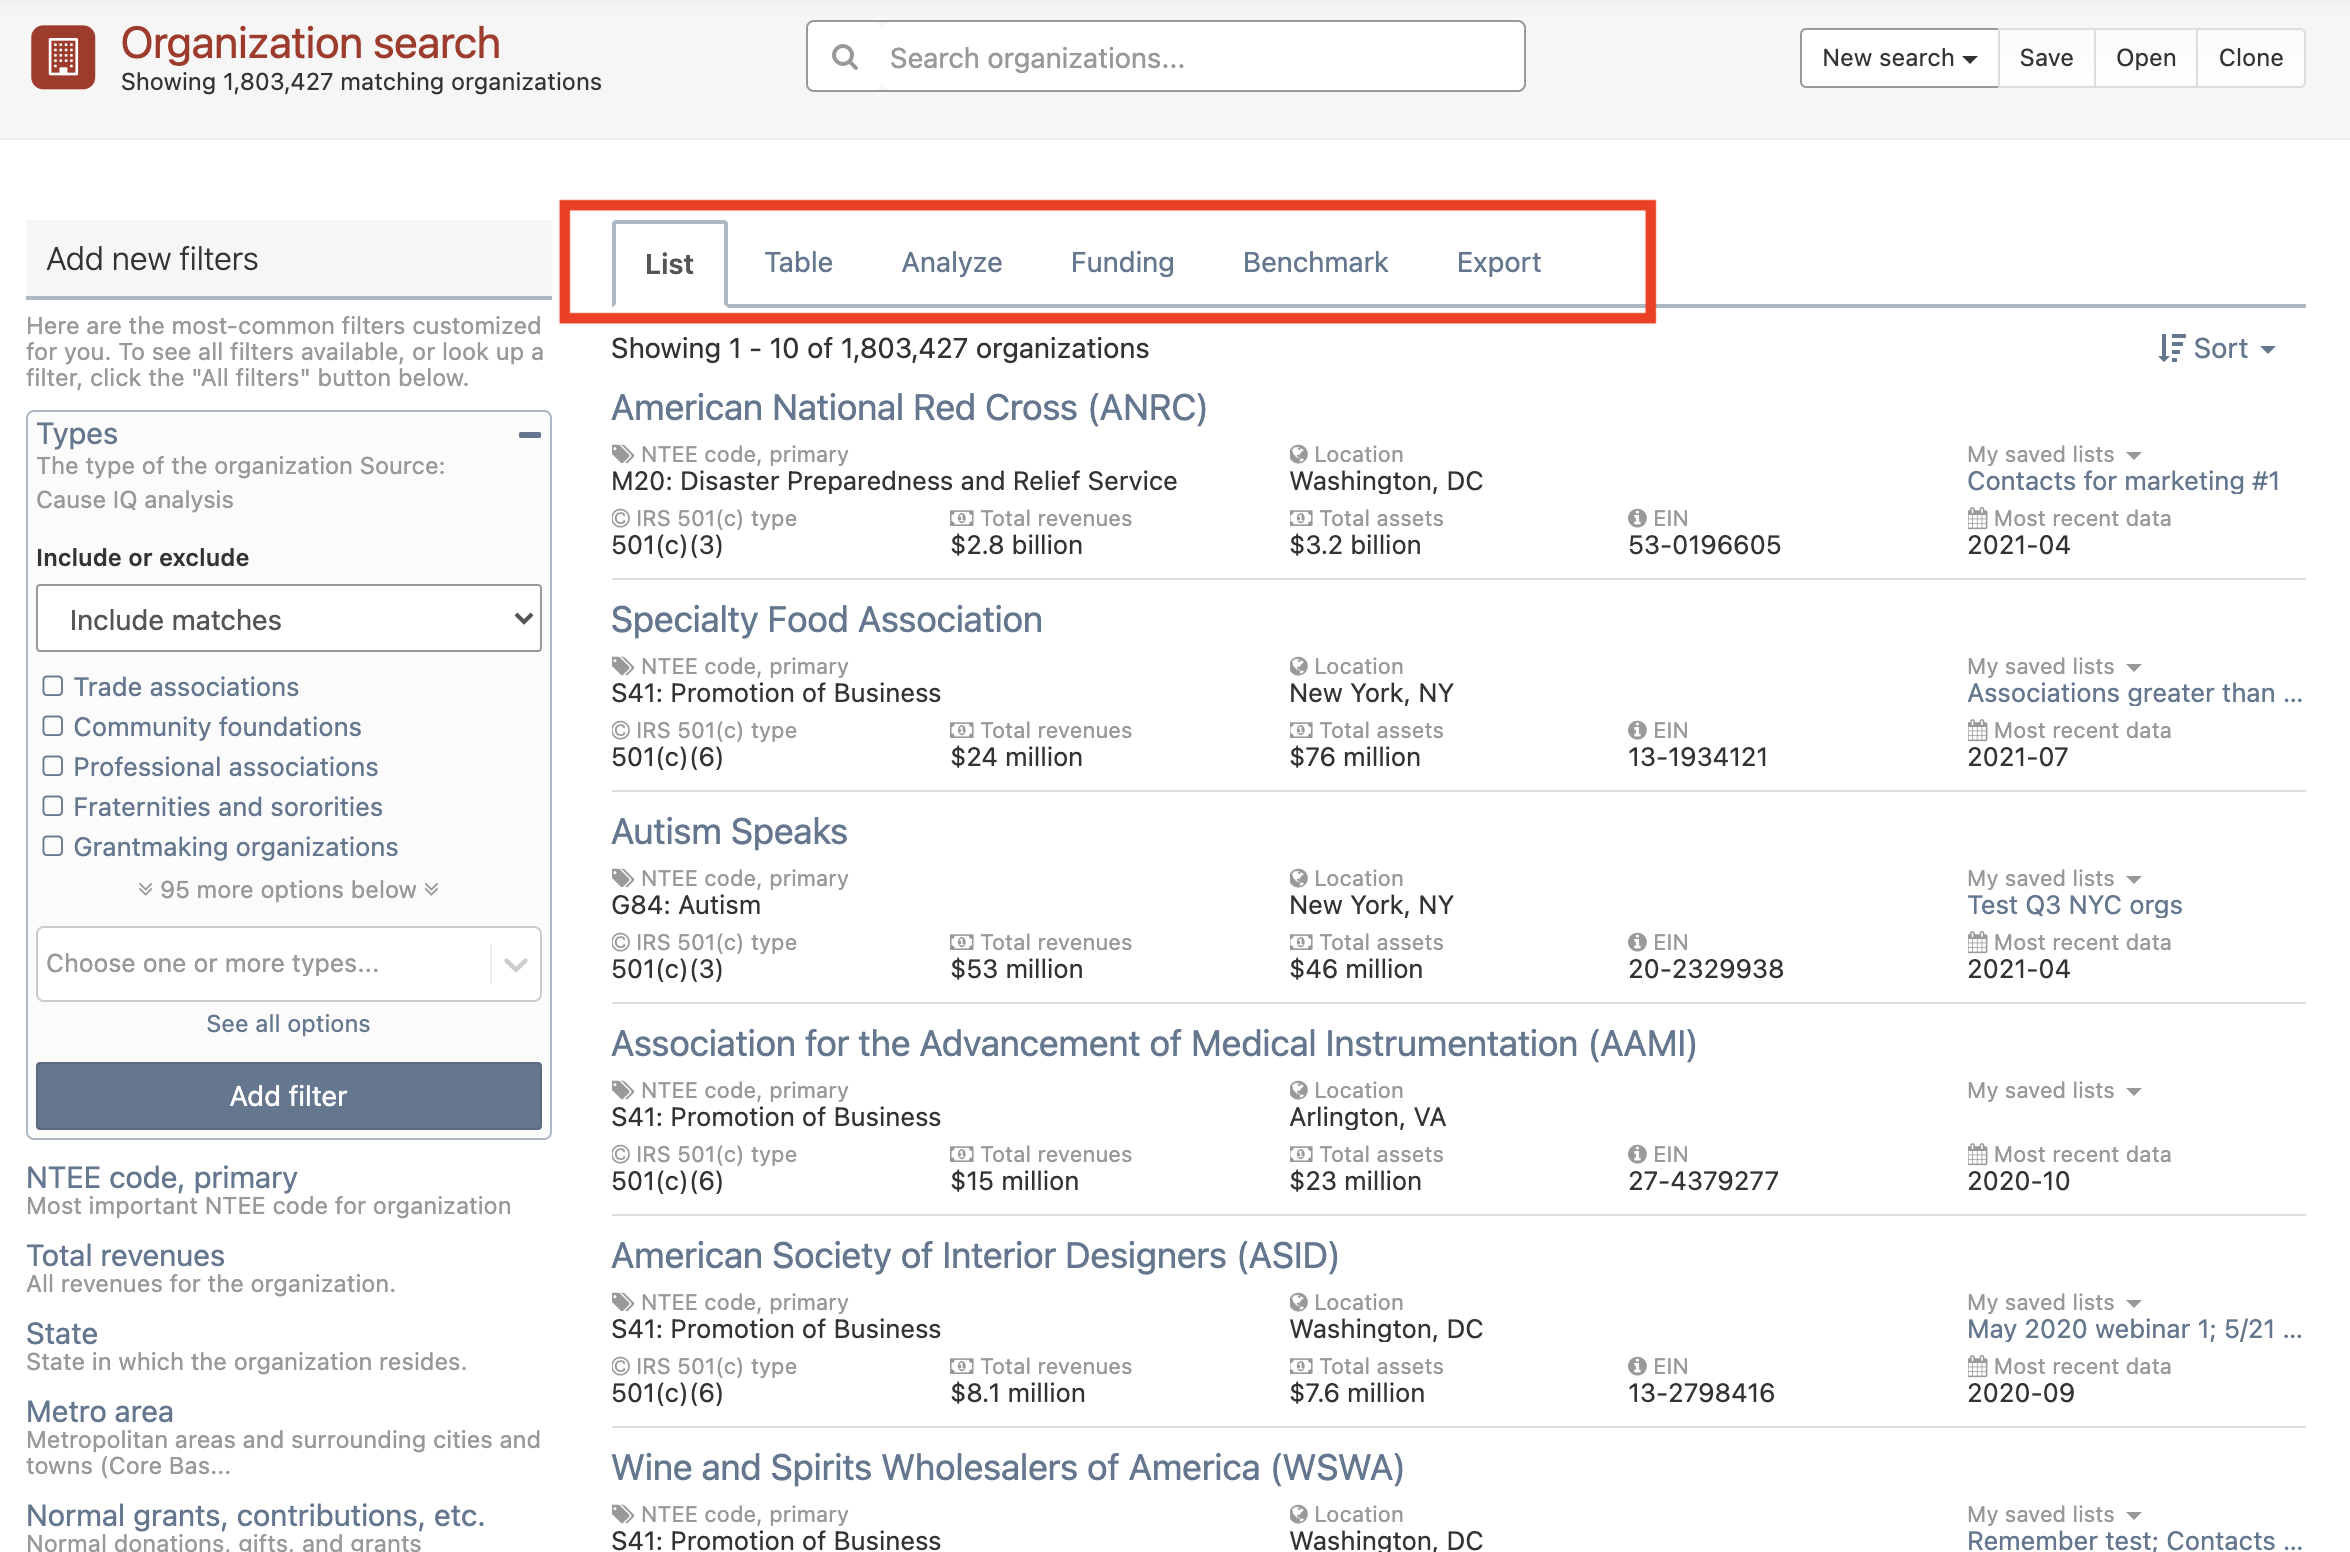 Tools and features in search interface